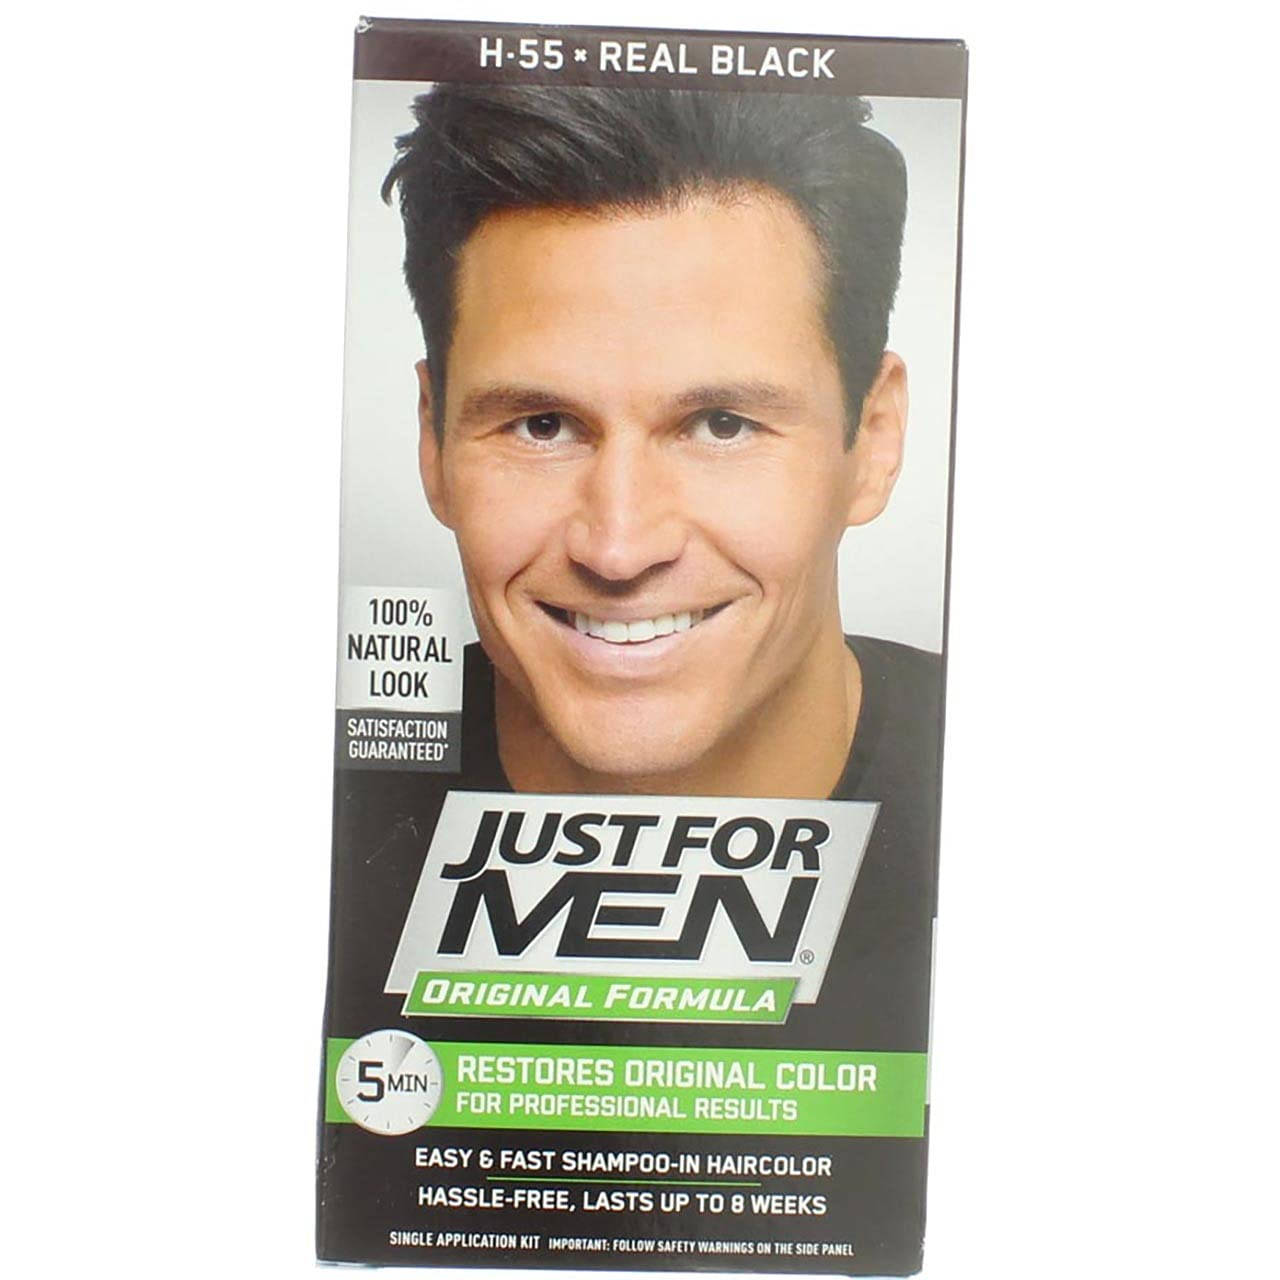 shop Just For Men Shampoo-In Hair Color pk - 2 Black Real New arrival